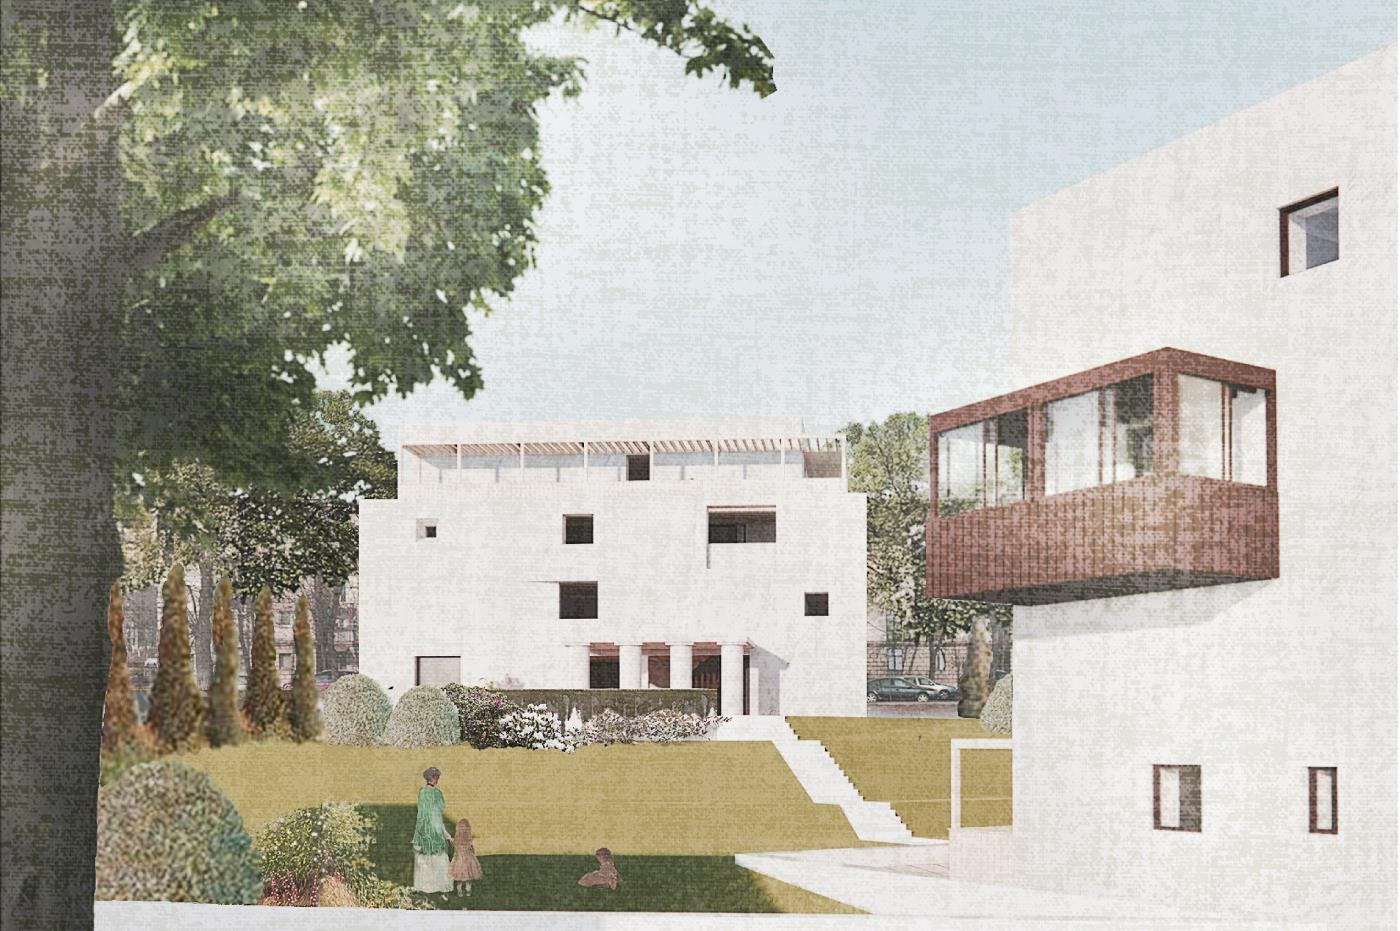 The Potential for Traditional Romanian Typologies to Inform a New Architecture for Iasi